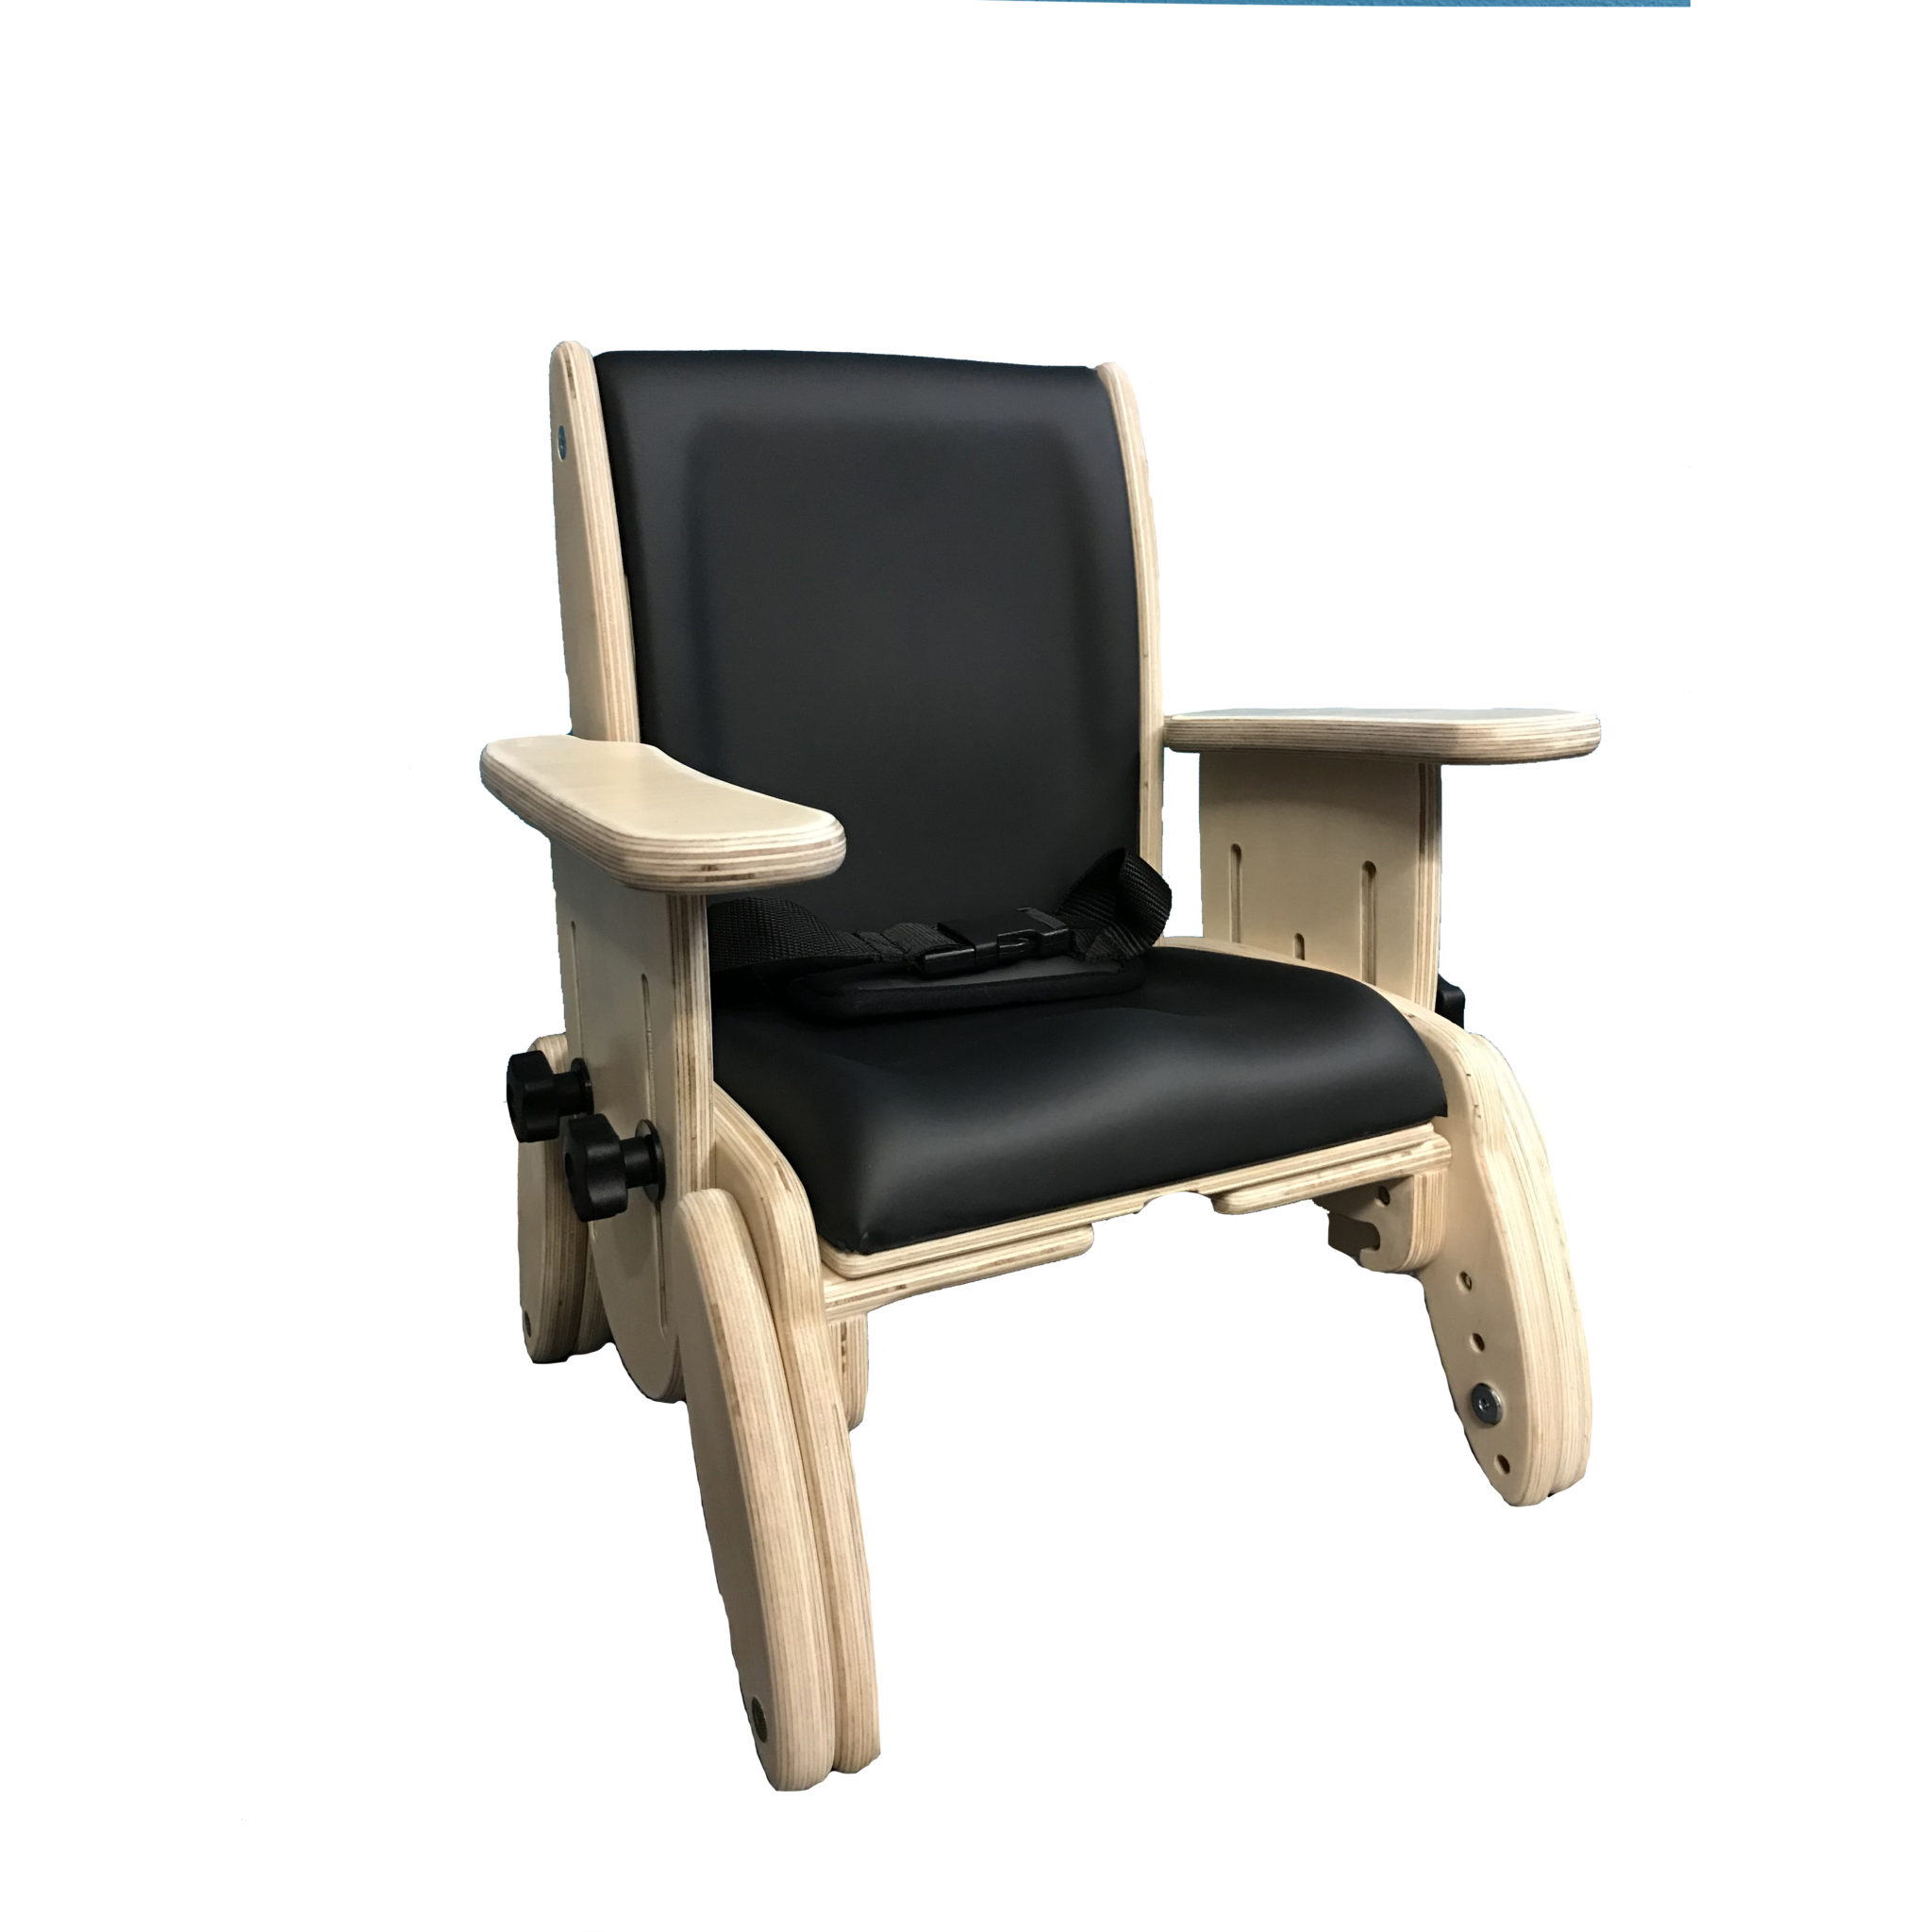 juni black - Juni chair available in a great new colour!